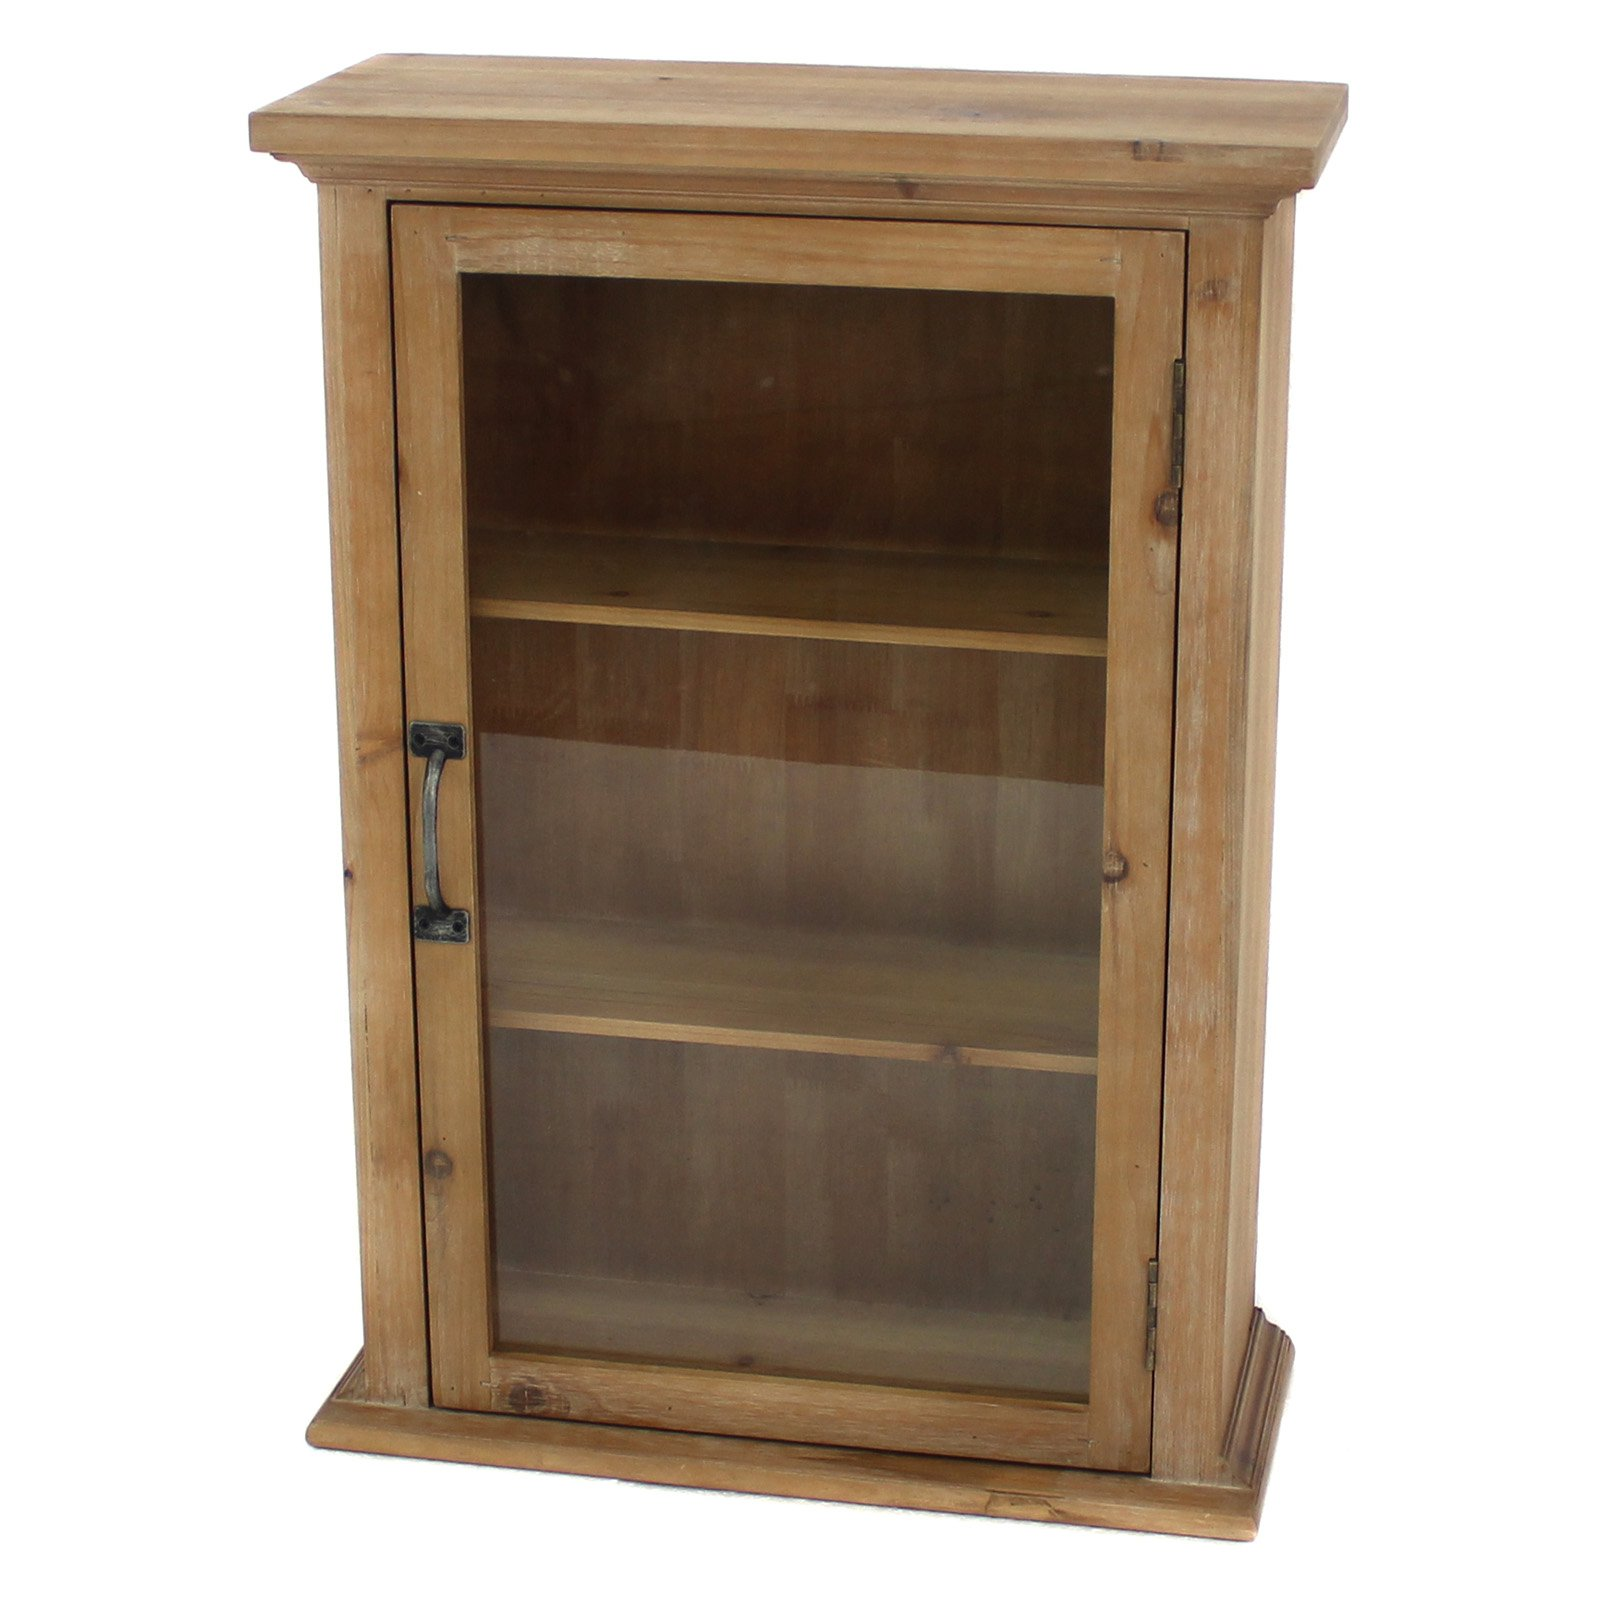 Teton Home Wall Mounted Wooden Cabinet Door